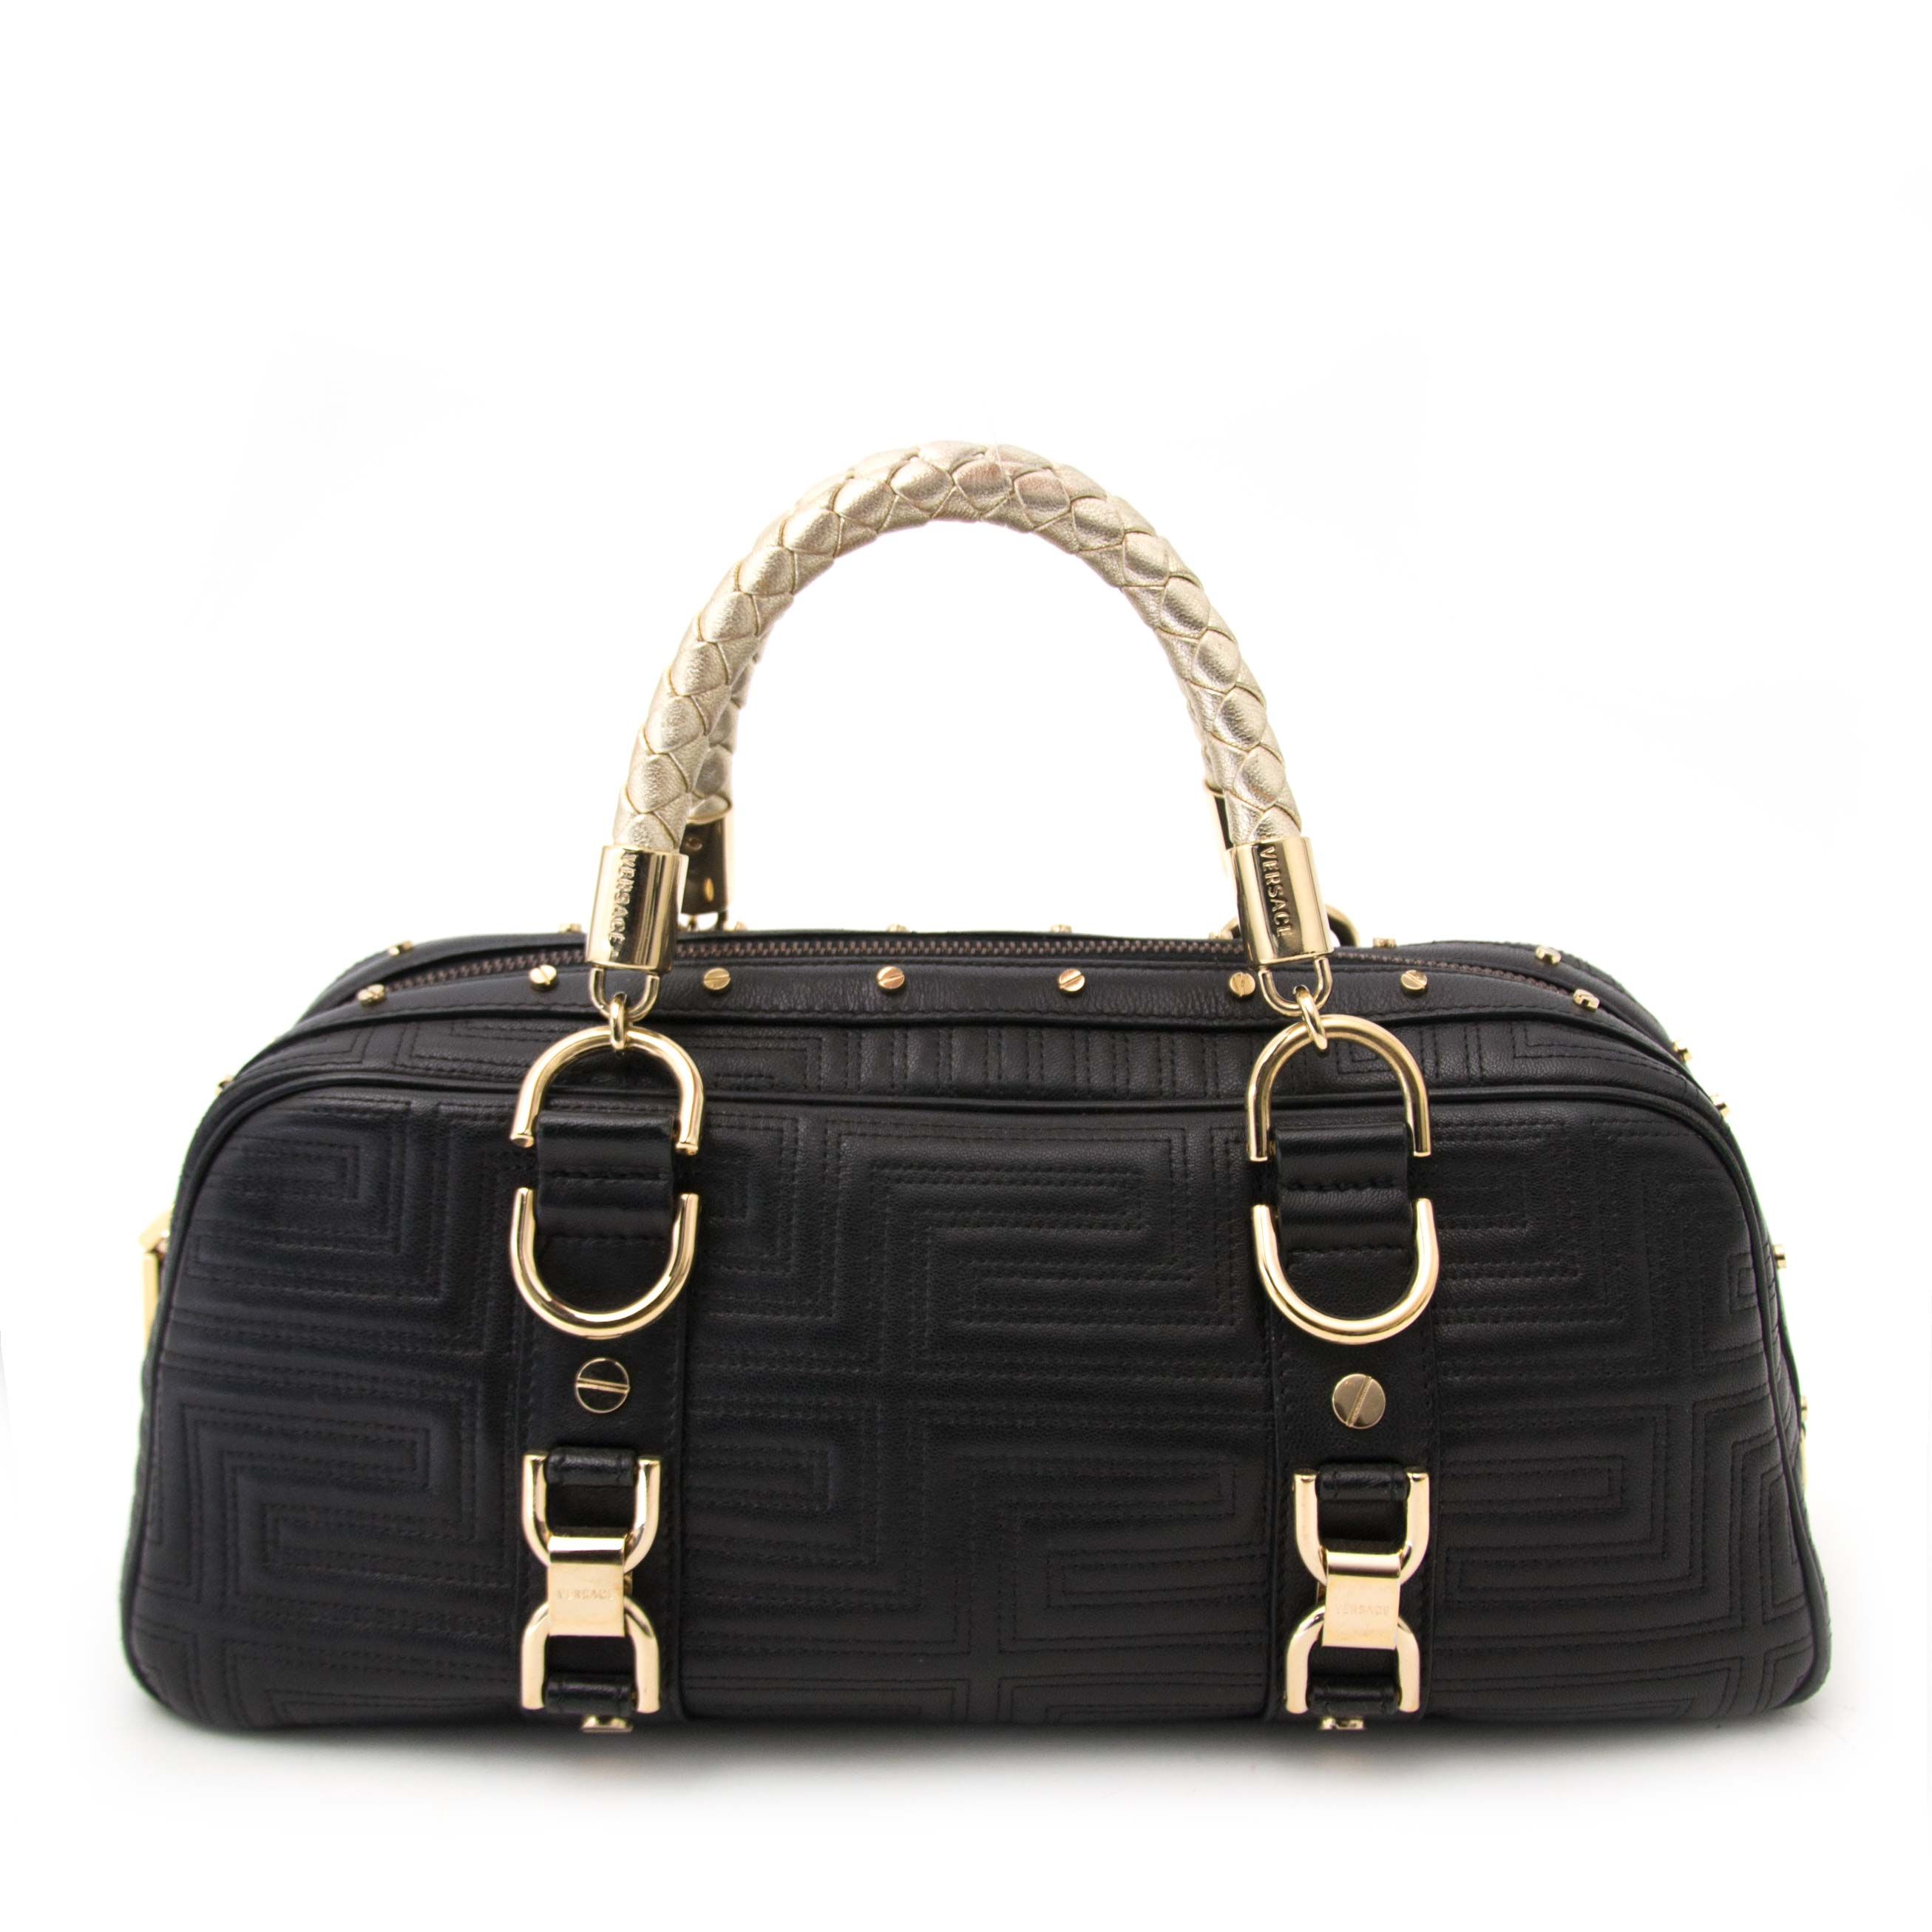 Labellov Buy luxury designer vintage online ○ Buy and Sell ... a4e9e35f4f